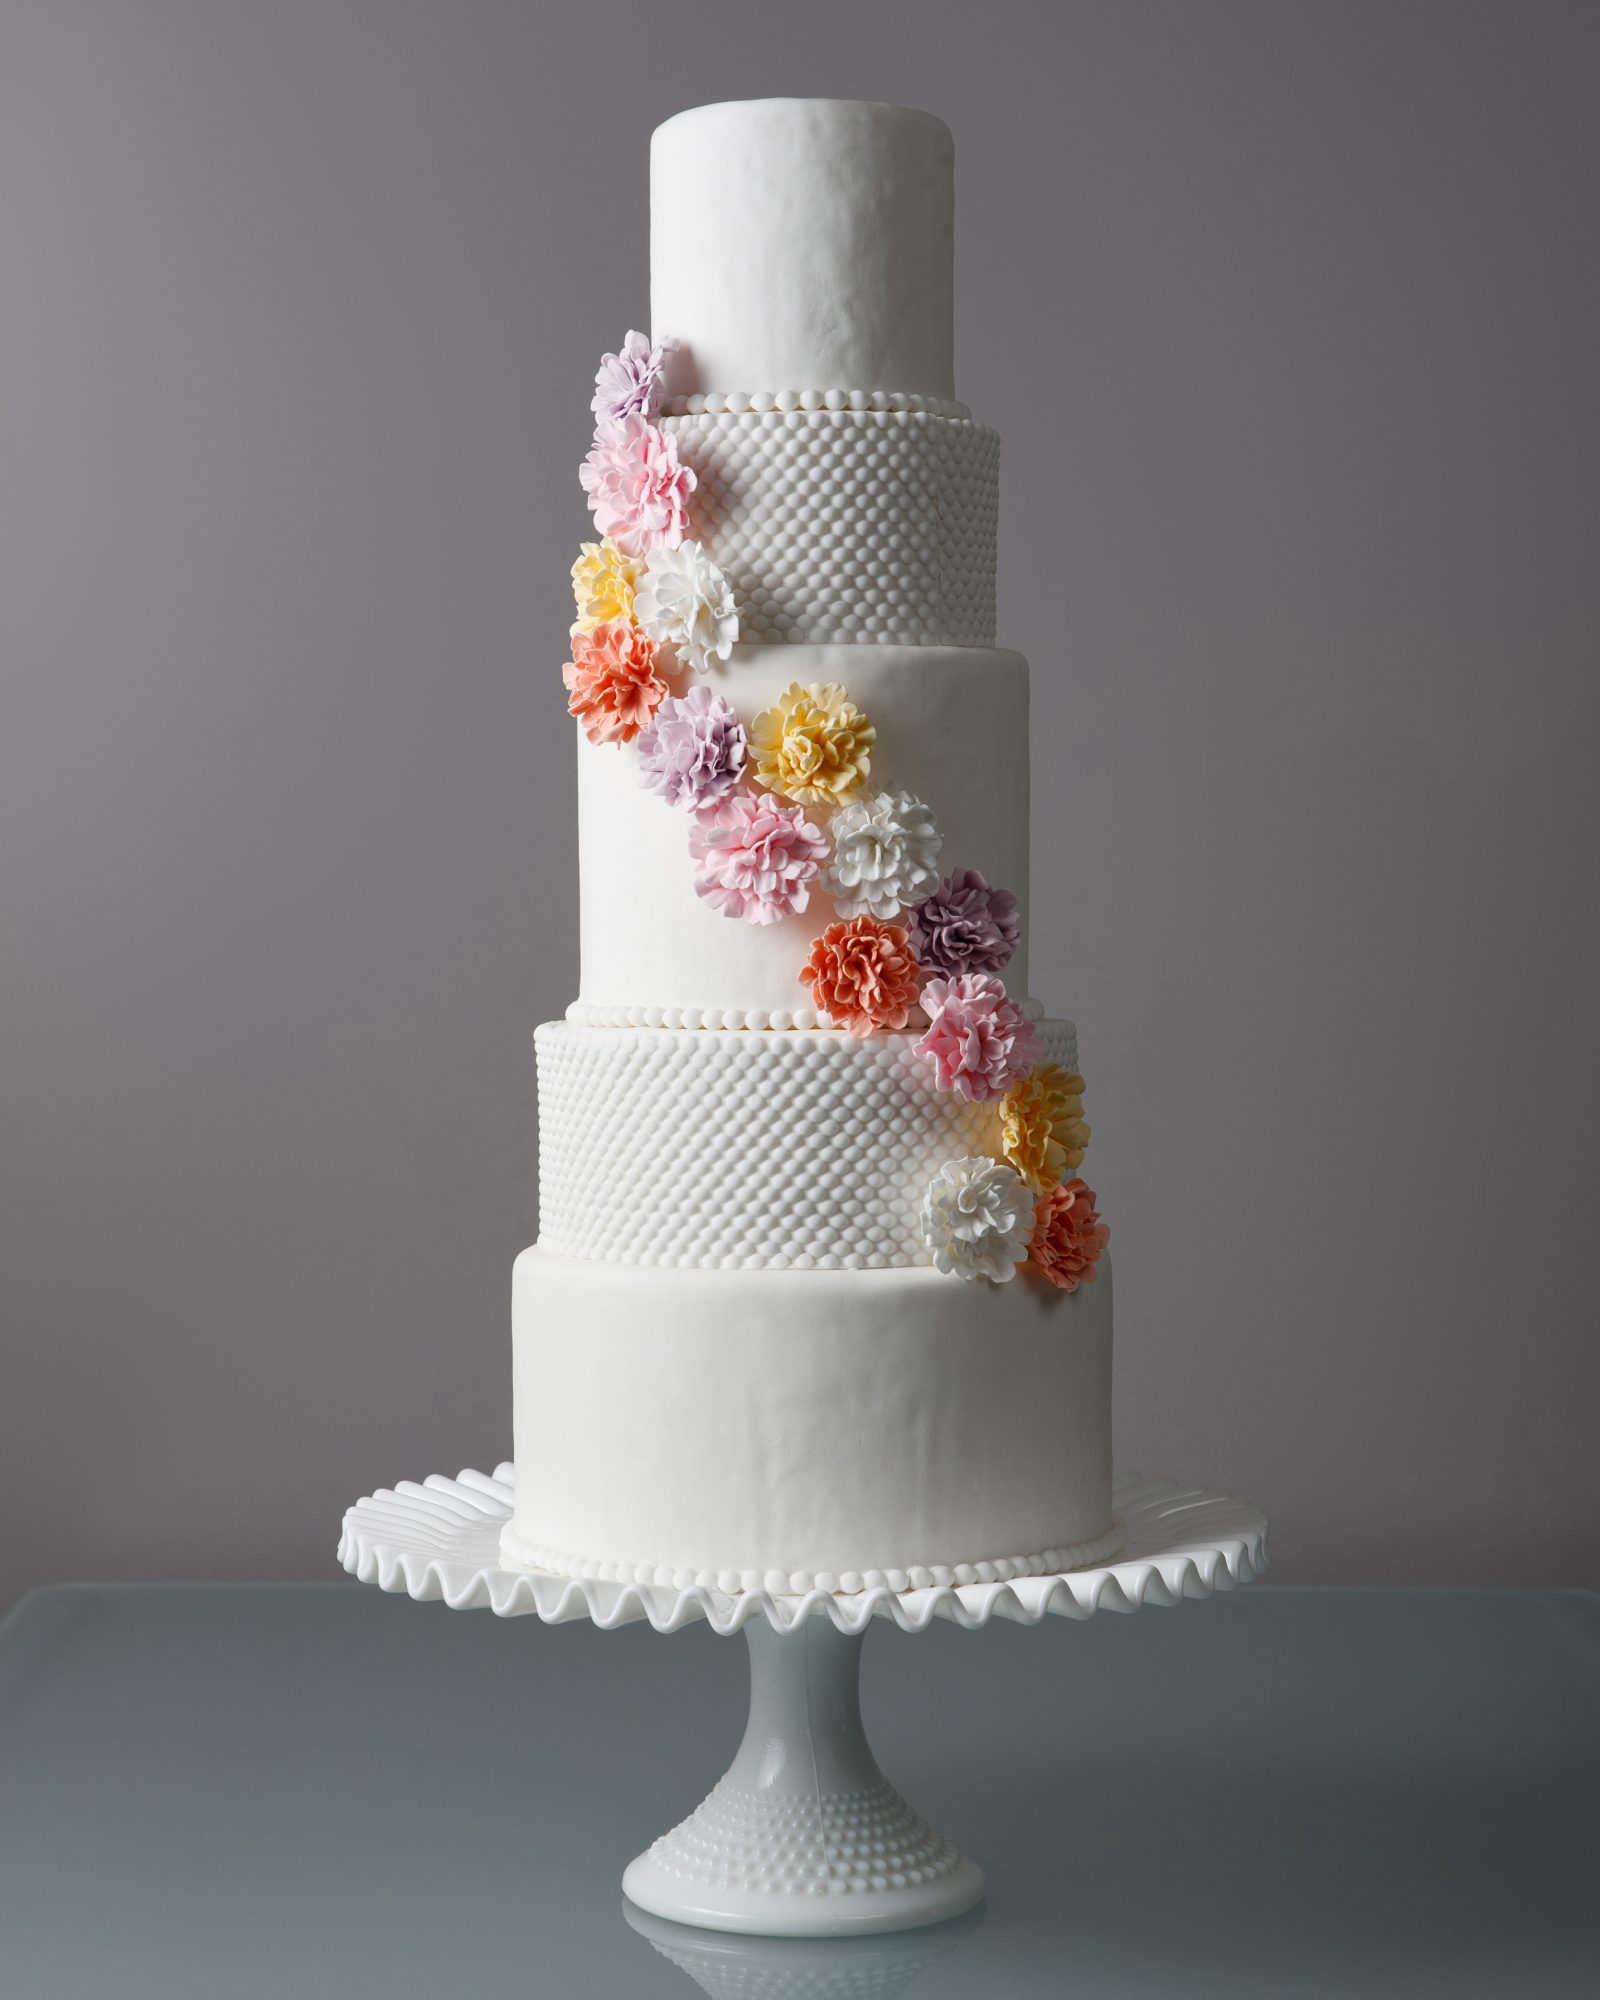 cake-pros-confectioneiress-0414.jpg